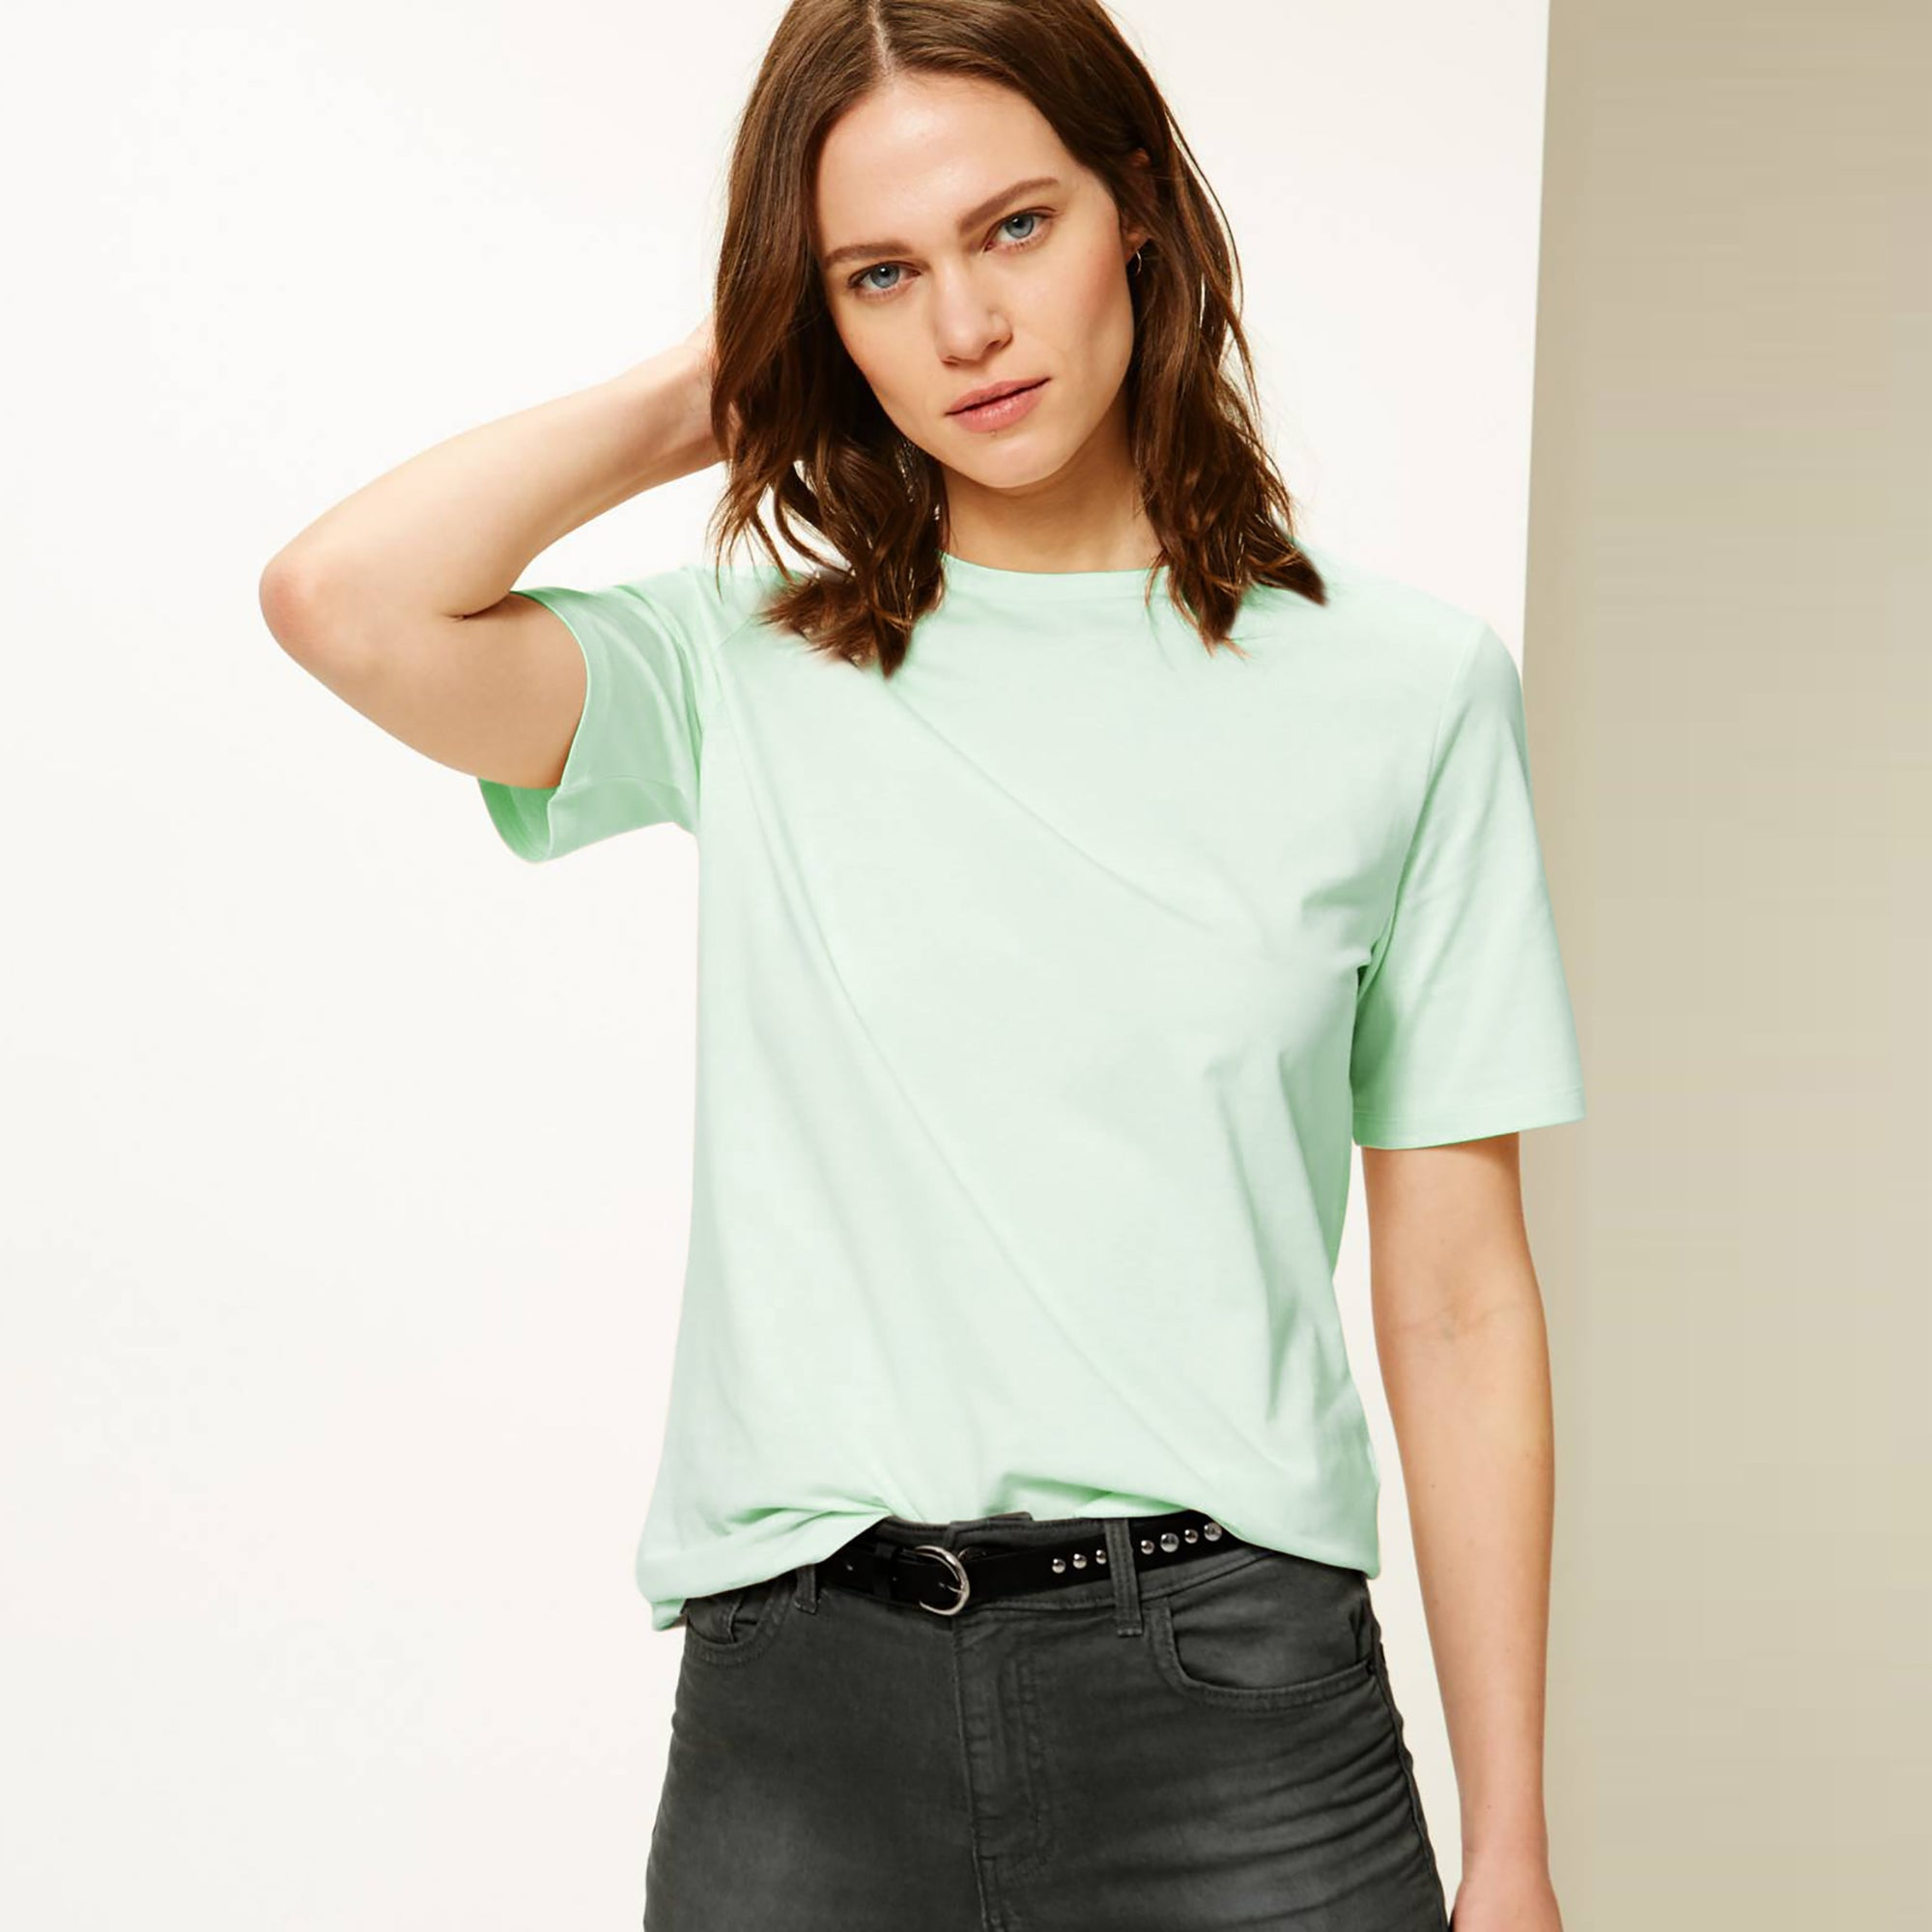 Zara Cut Label Half Sleeve Stylish Viscose Tee Shirt For Women-BE8505